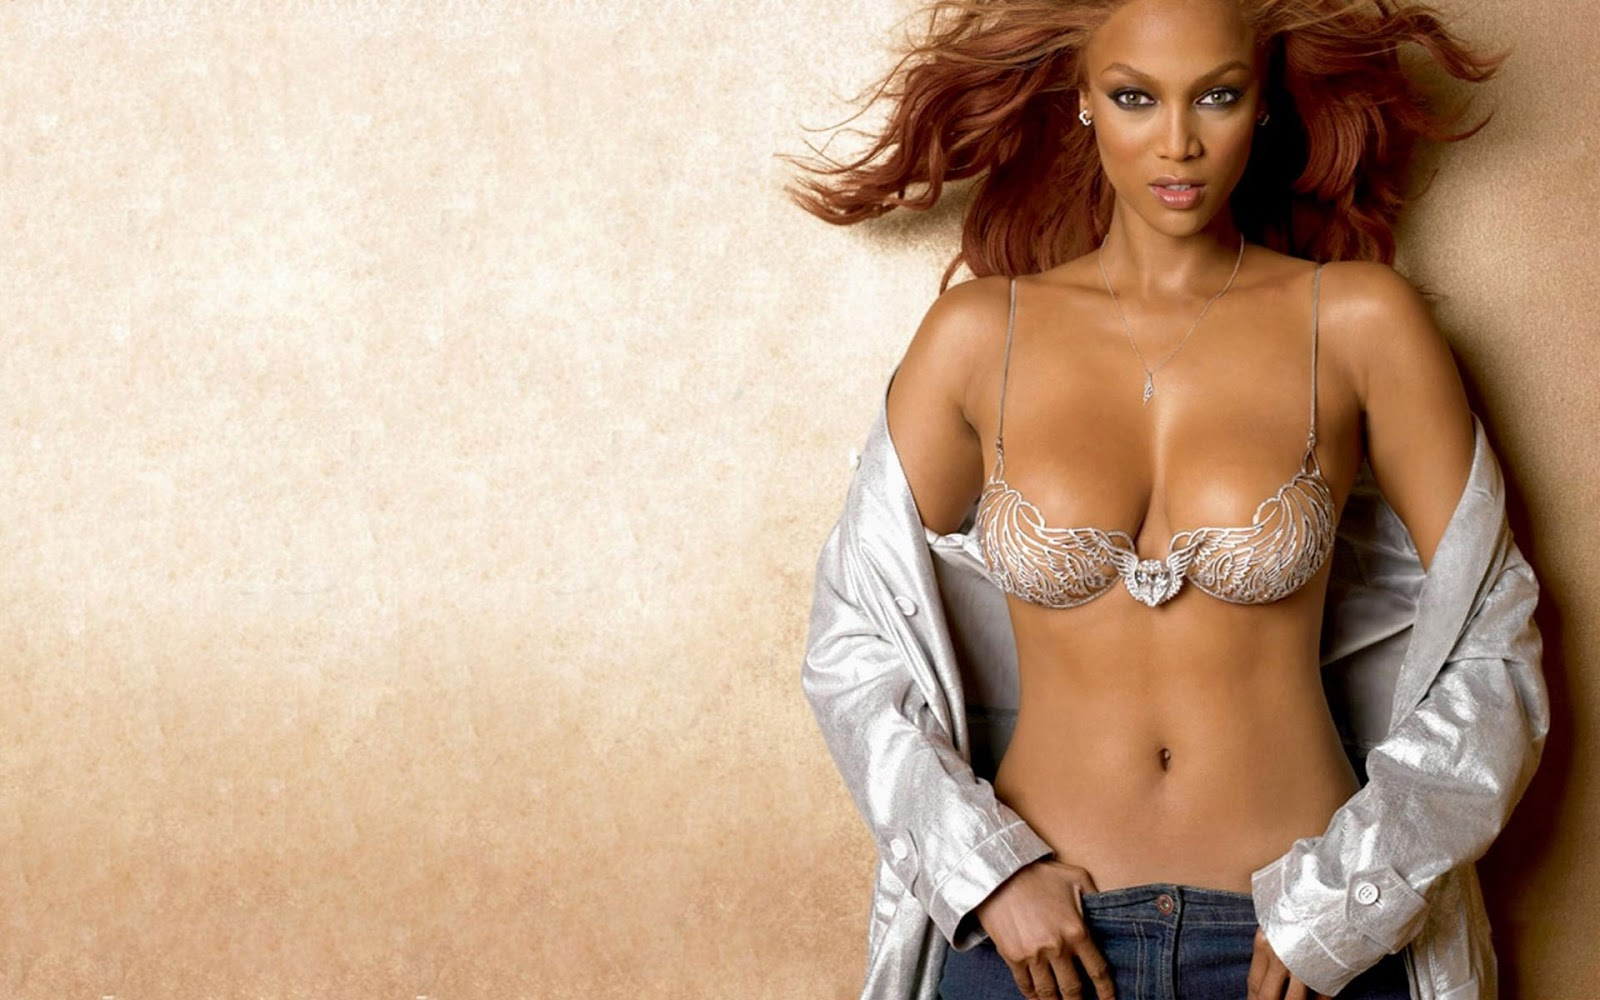 Sexy Pictures Of Tyra Banks